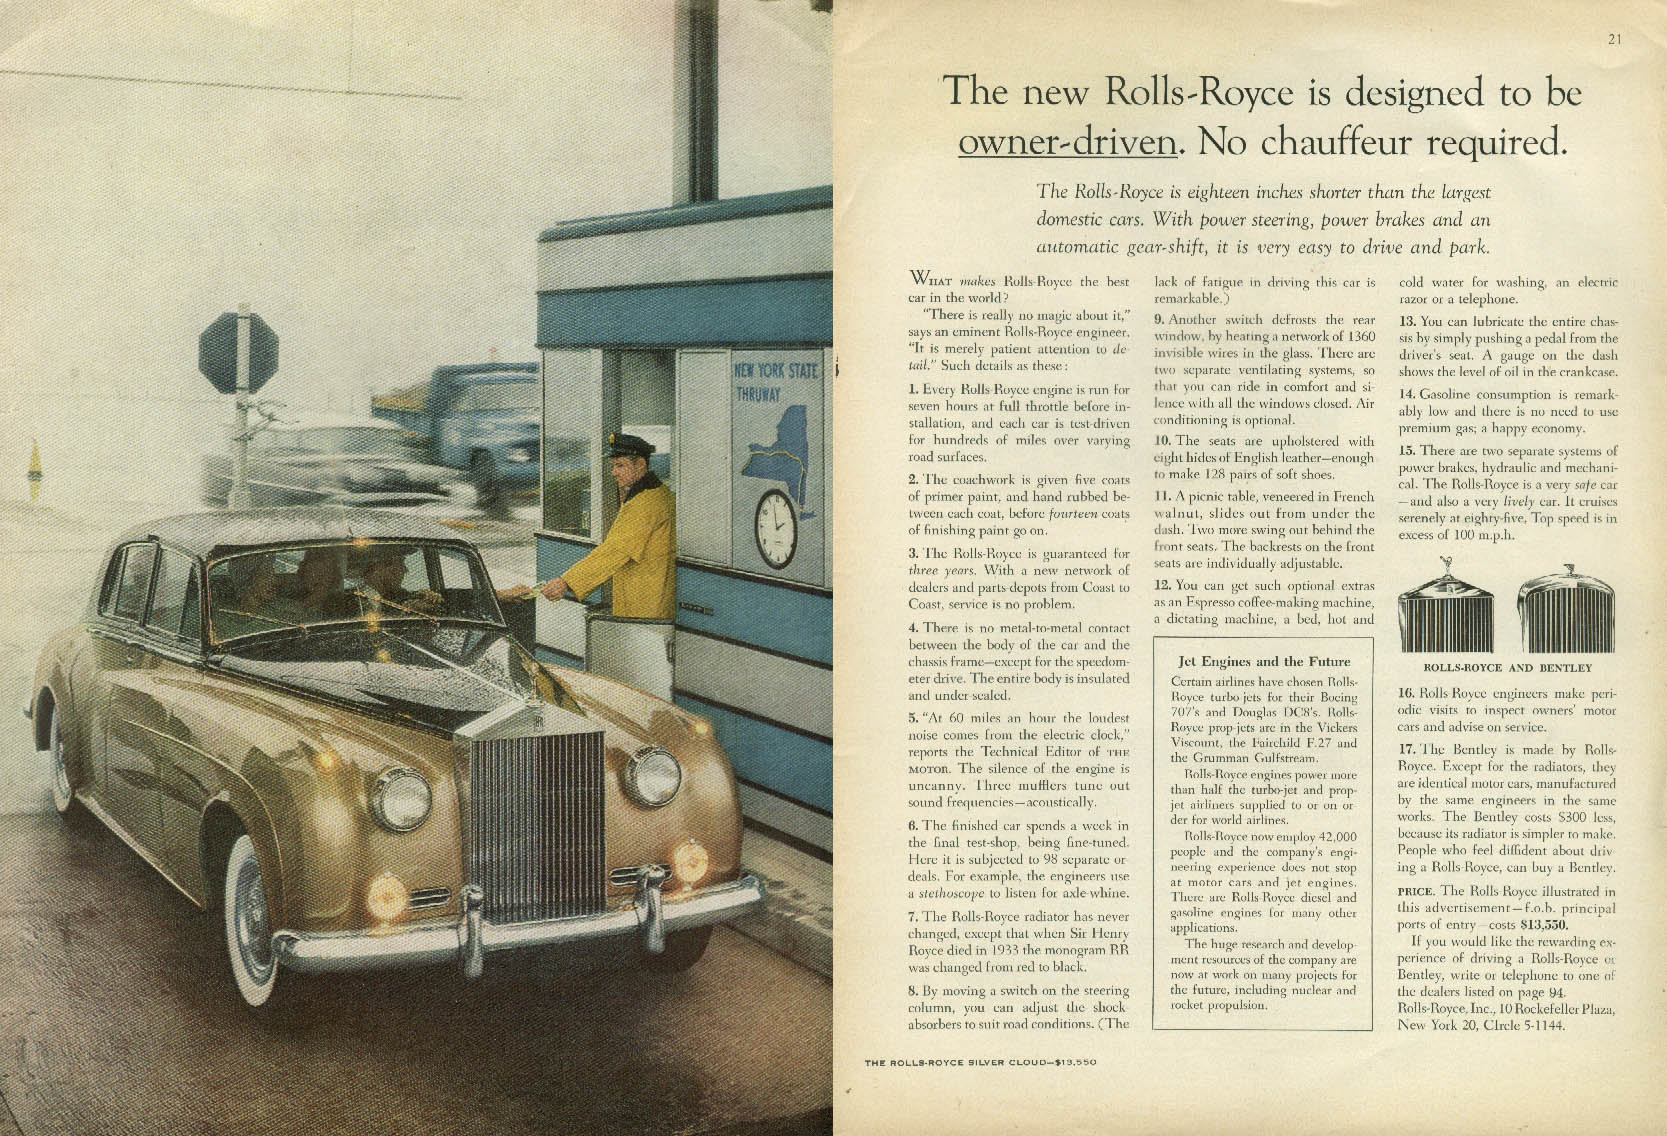 Designed to be owner-driven No chauffeur required Rolls-Royce ad 1958 NY